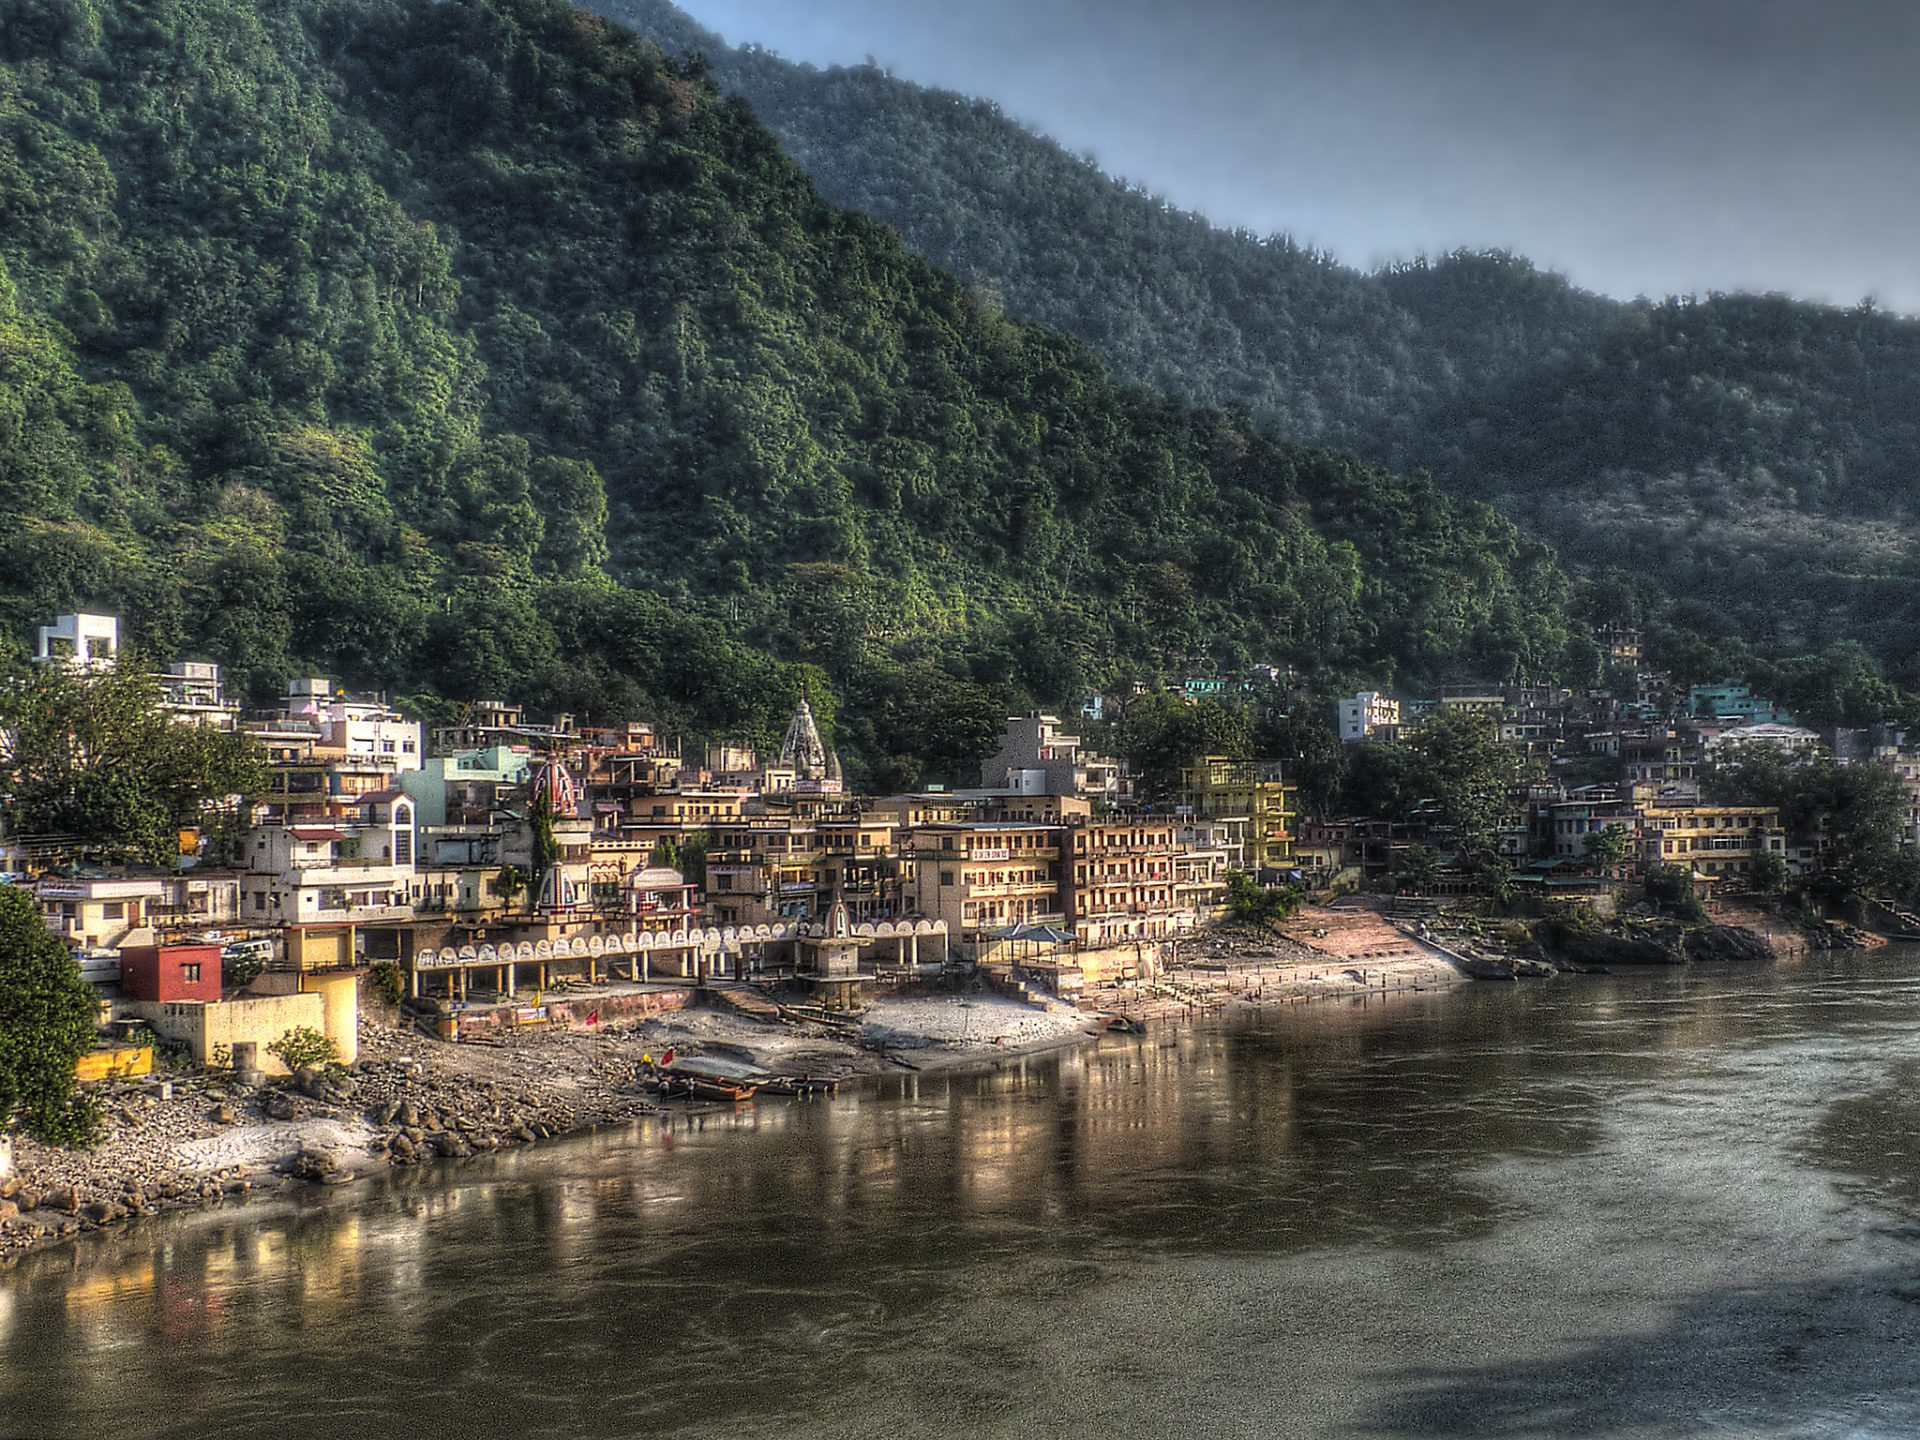 Mountain Sunday City Guide: What to Do in Rishikesh, India